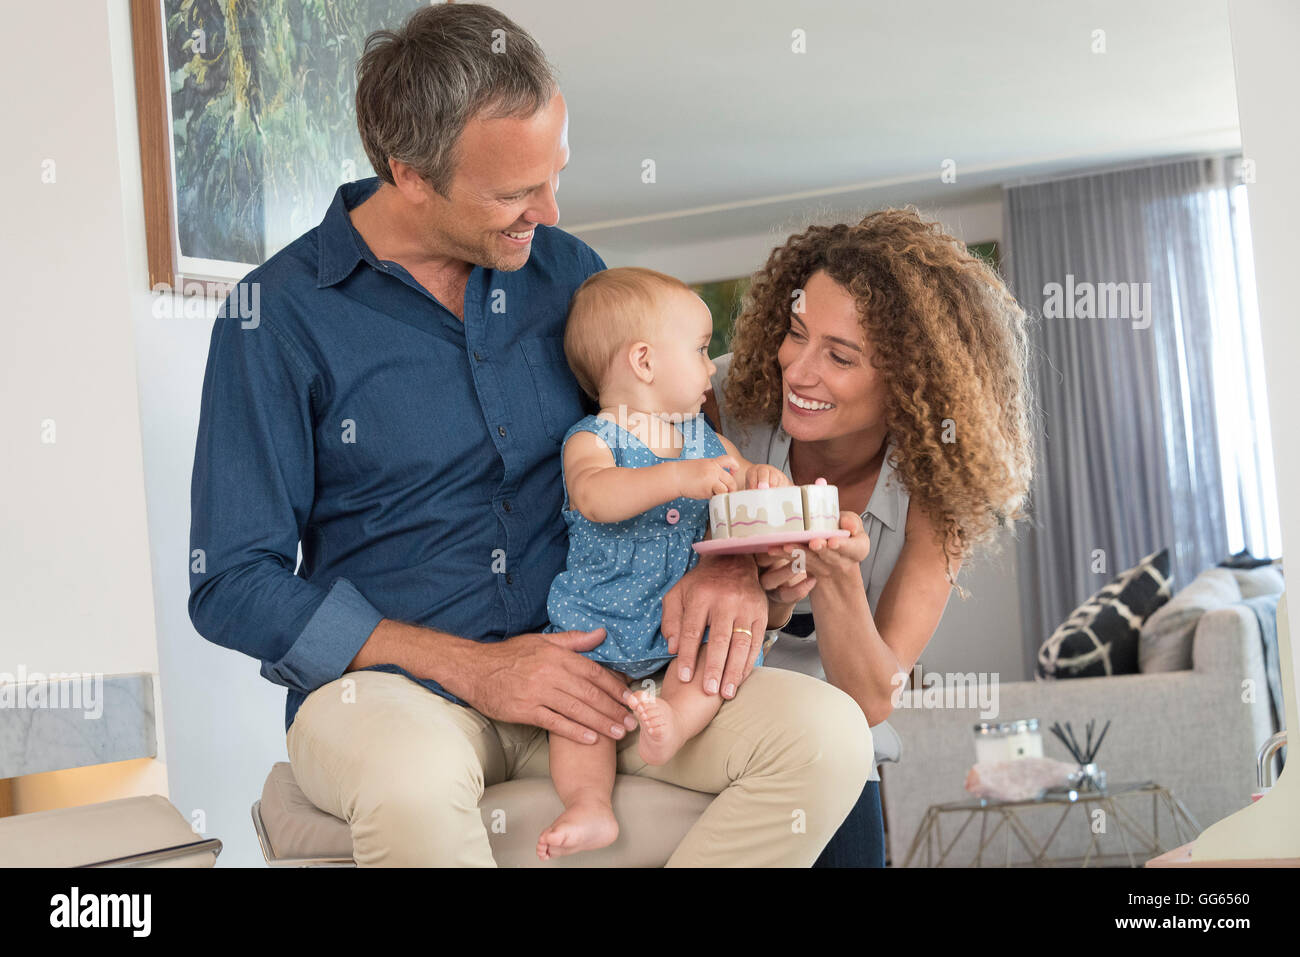 Happy woman giving toy to her baby daughter sitting on her father lap - Stock Image